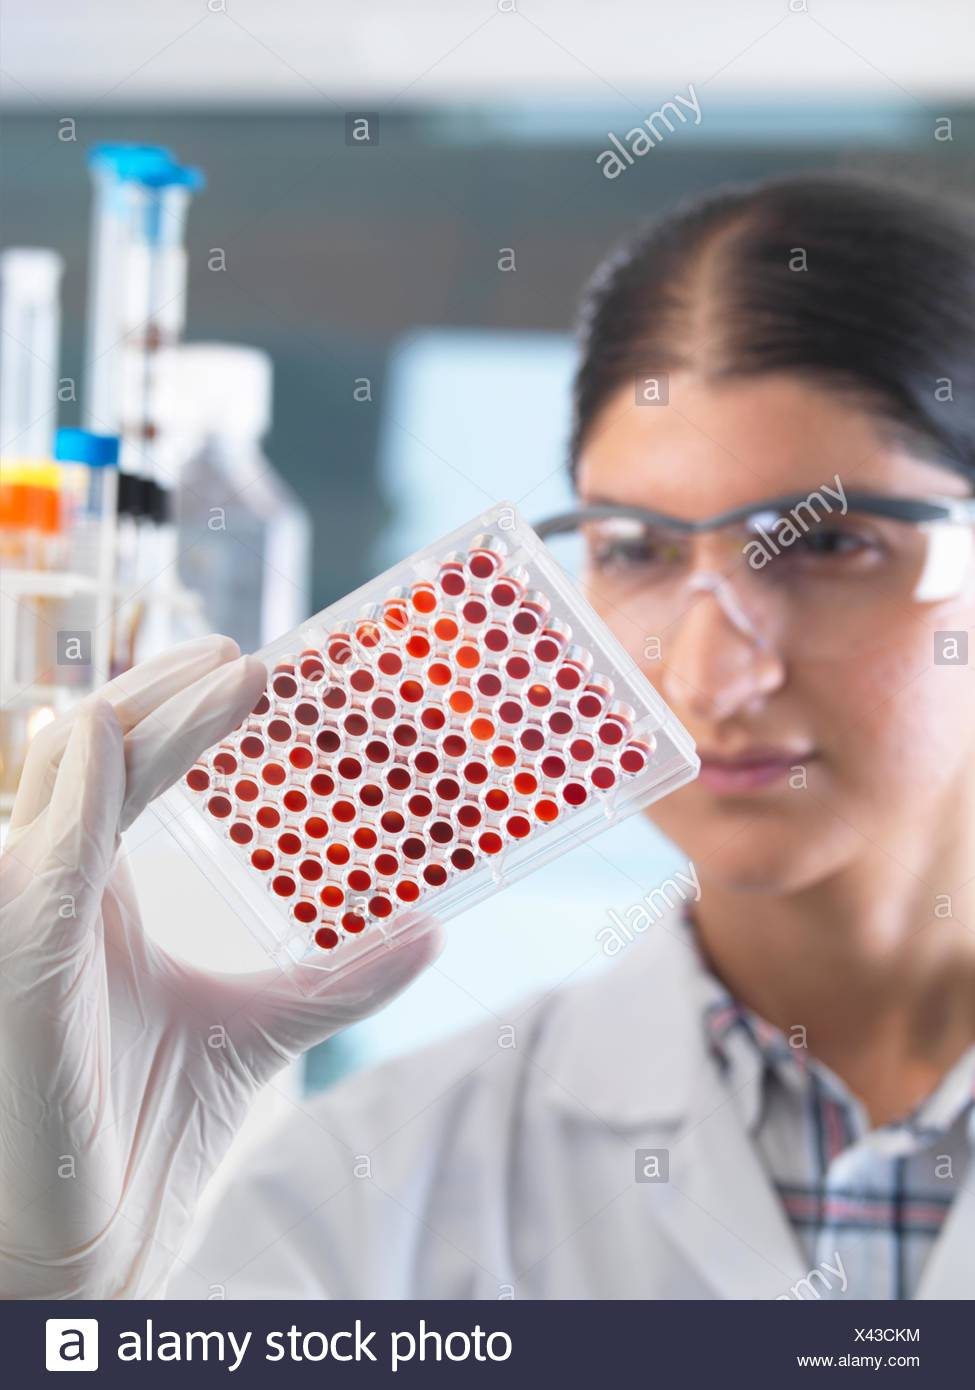 Female scientist examining micro plate blood samples in laboratory - Stock Image